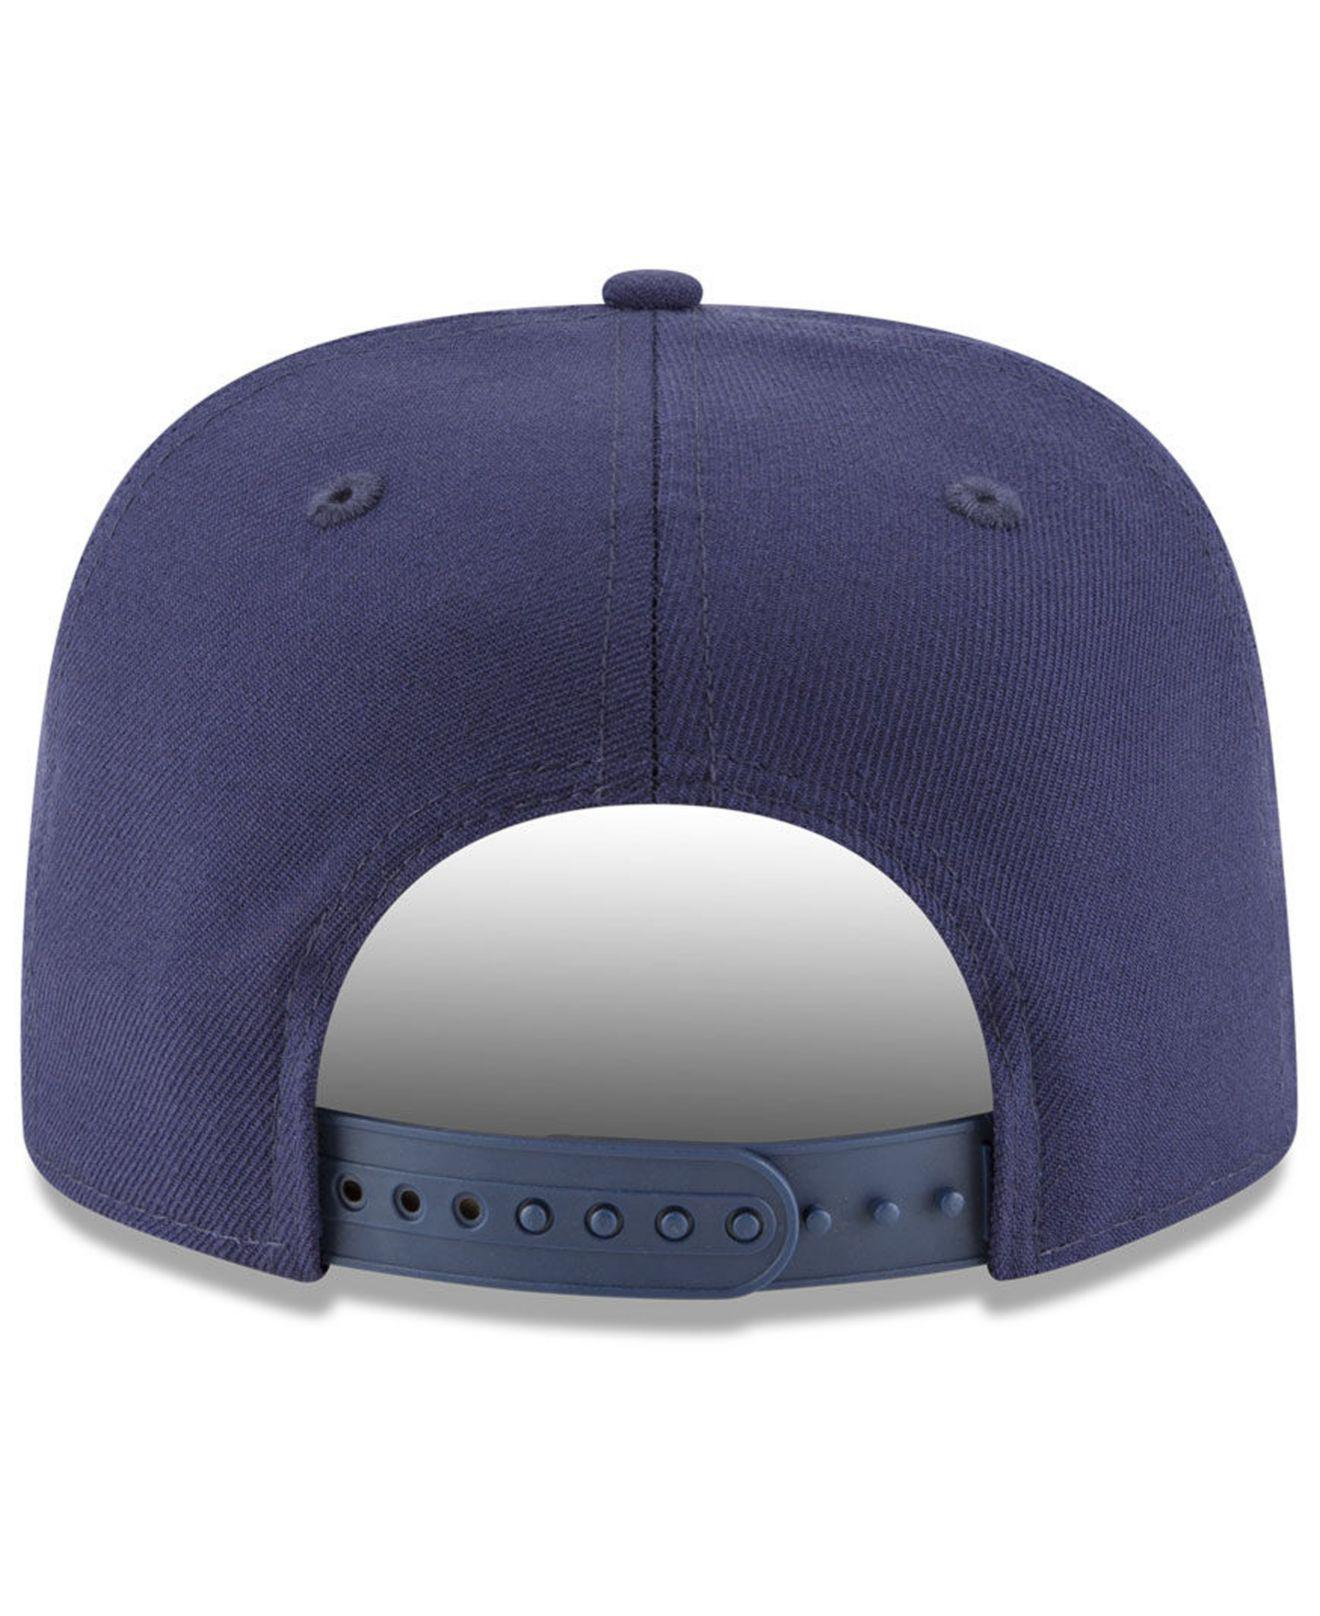 04f9782bf2b Lyst - KTZ Los Angeles Angels Vintage 9fifty Snapback Cap in Blue ...